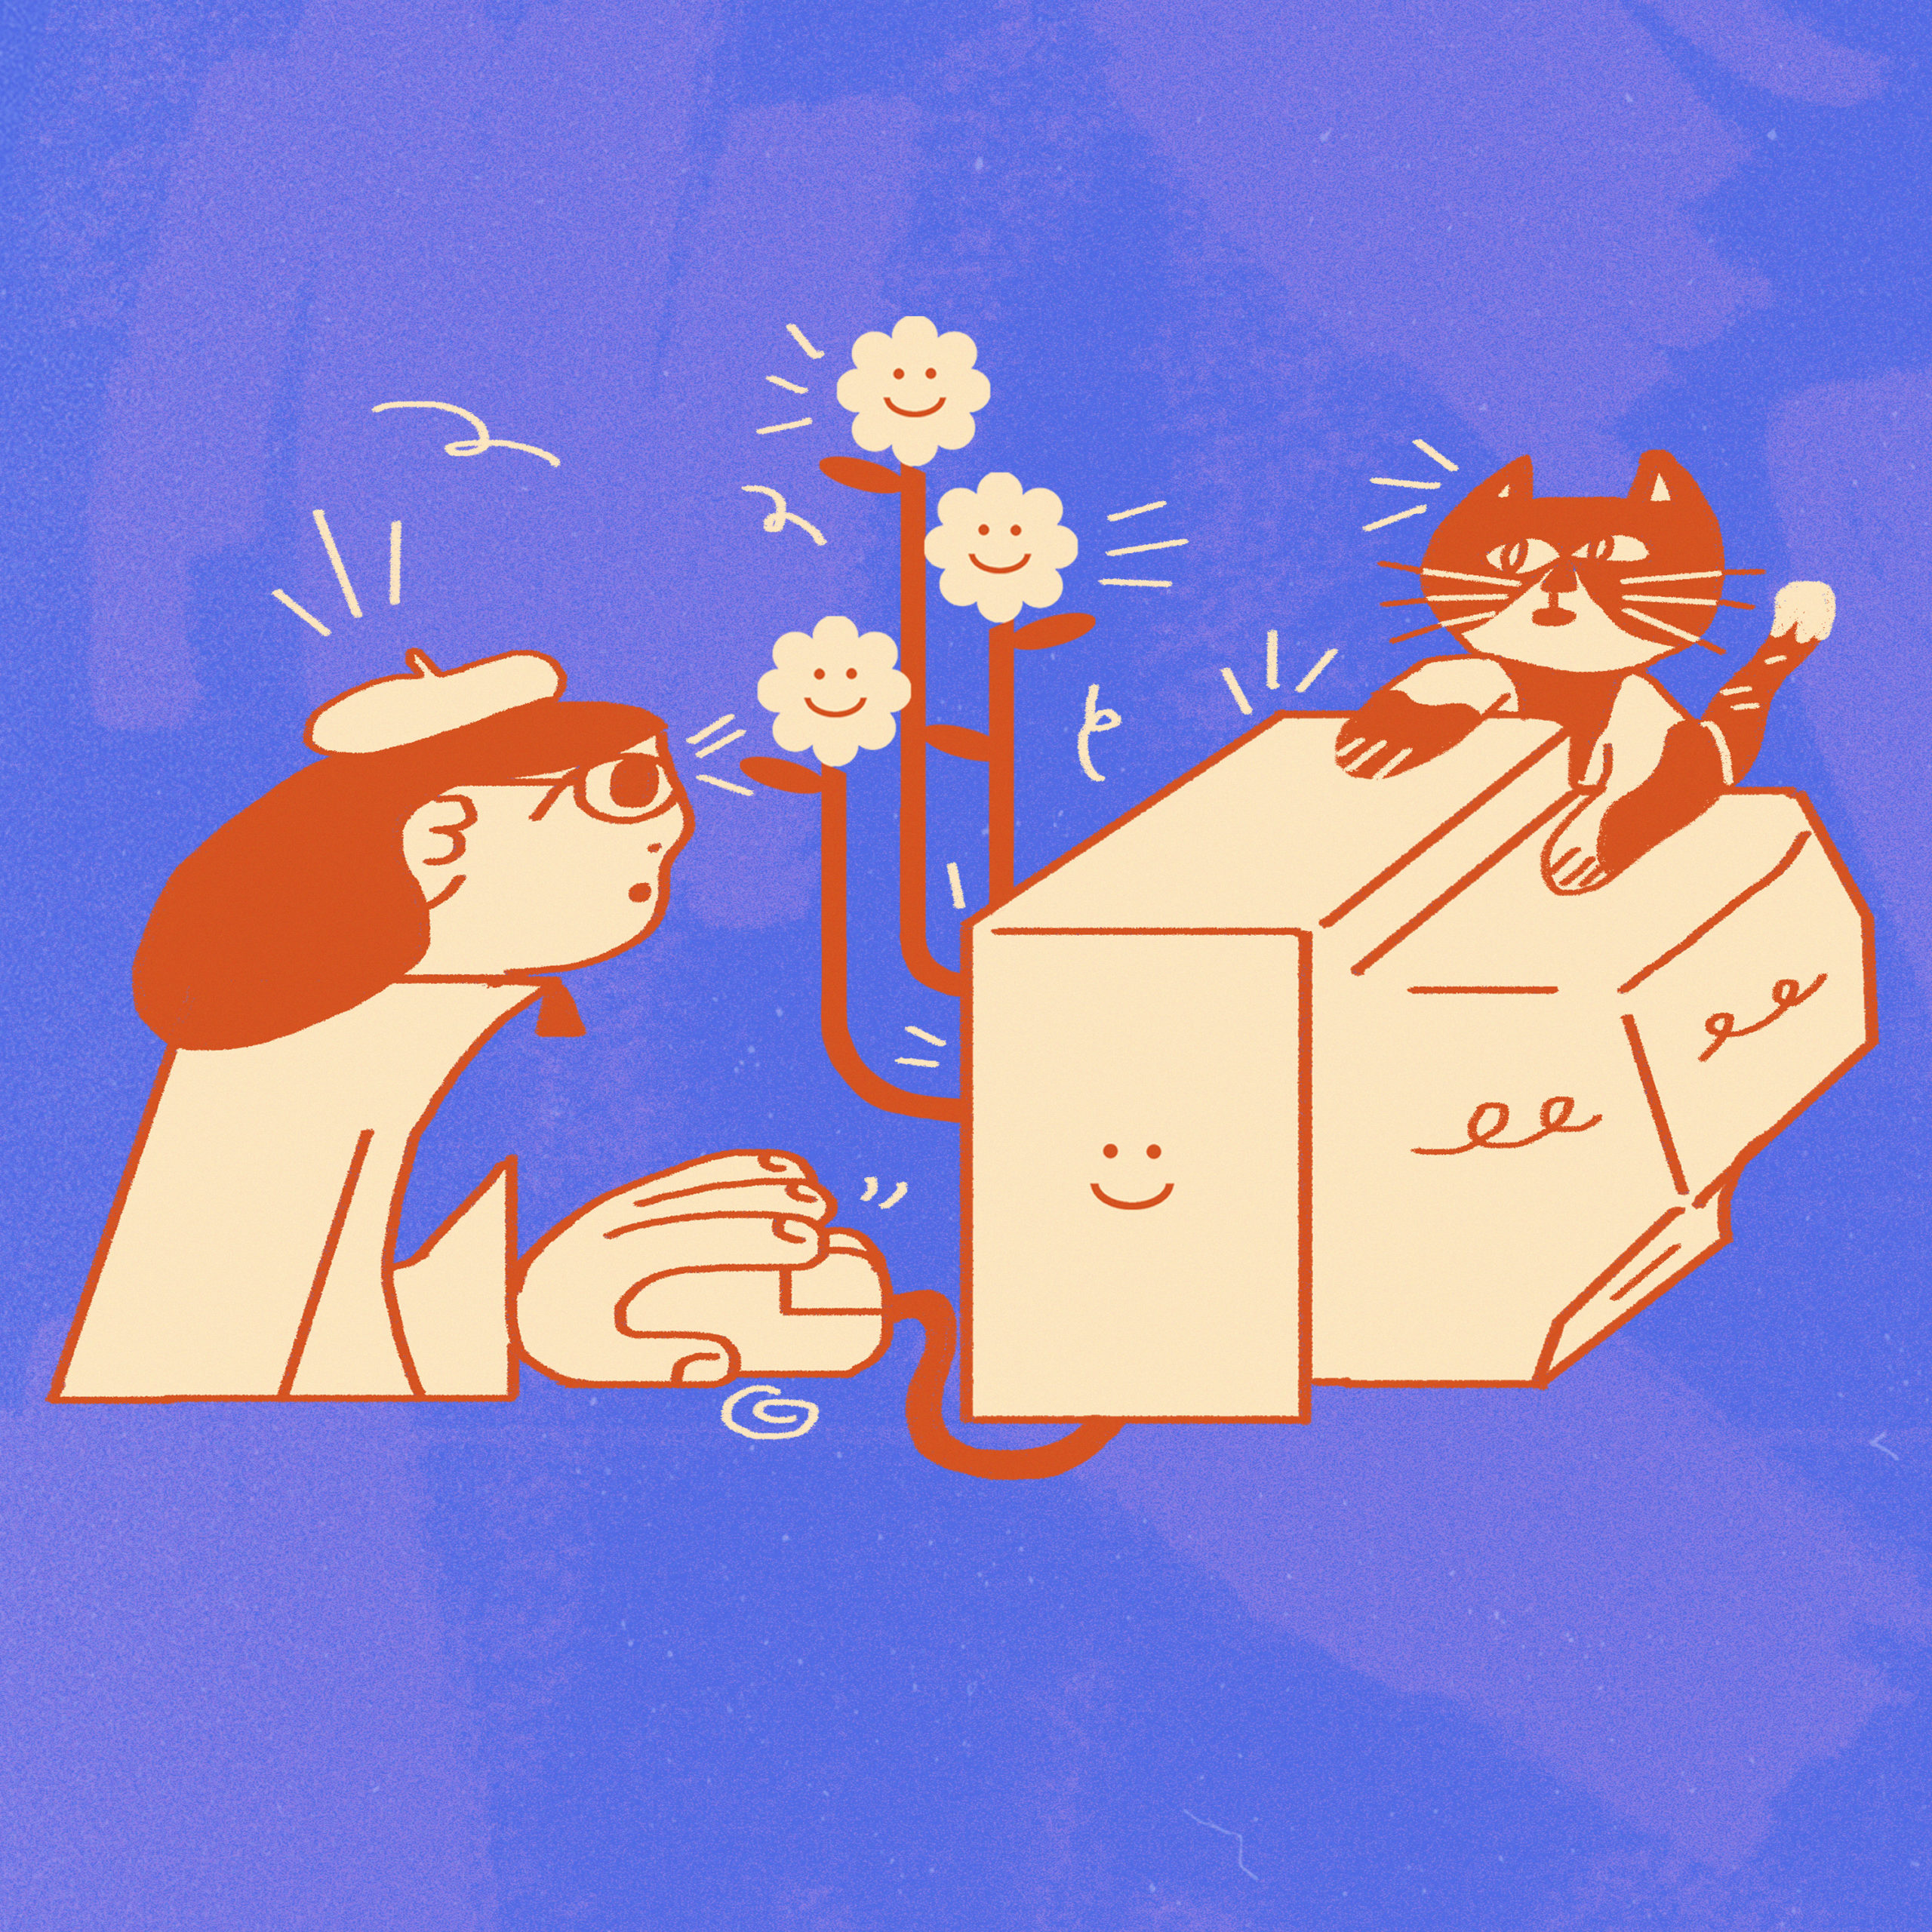 An illustration with a person typing on an old fashioned computer that is sprouting flowers. A cat sits on top of the computer.